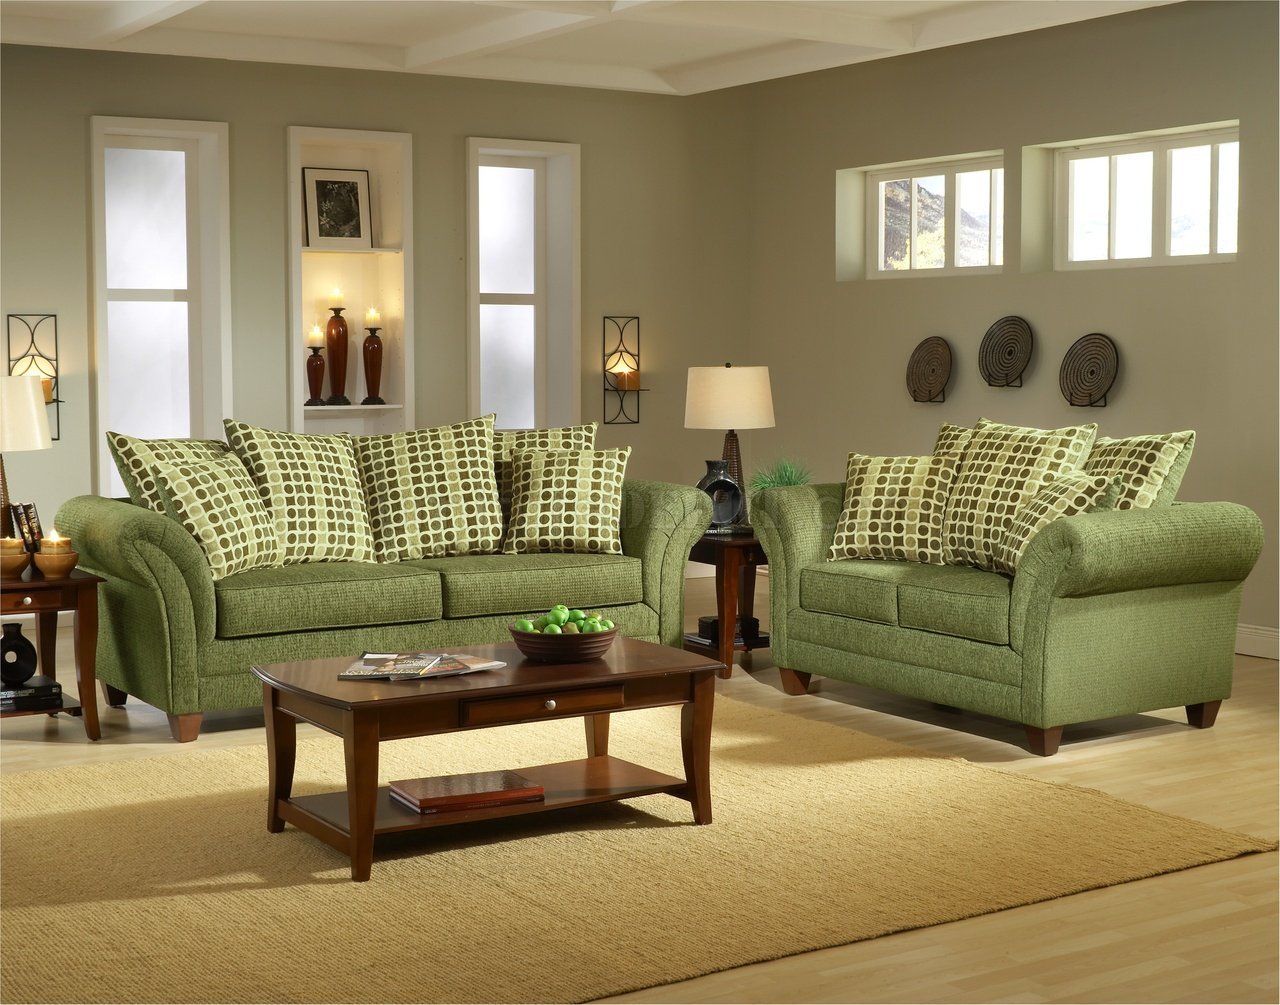 Lime Green Living Room Lime Green Sofa Teal Sofa Comfortable Lime Green Sofa Dark